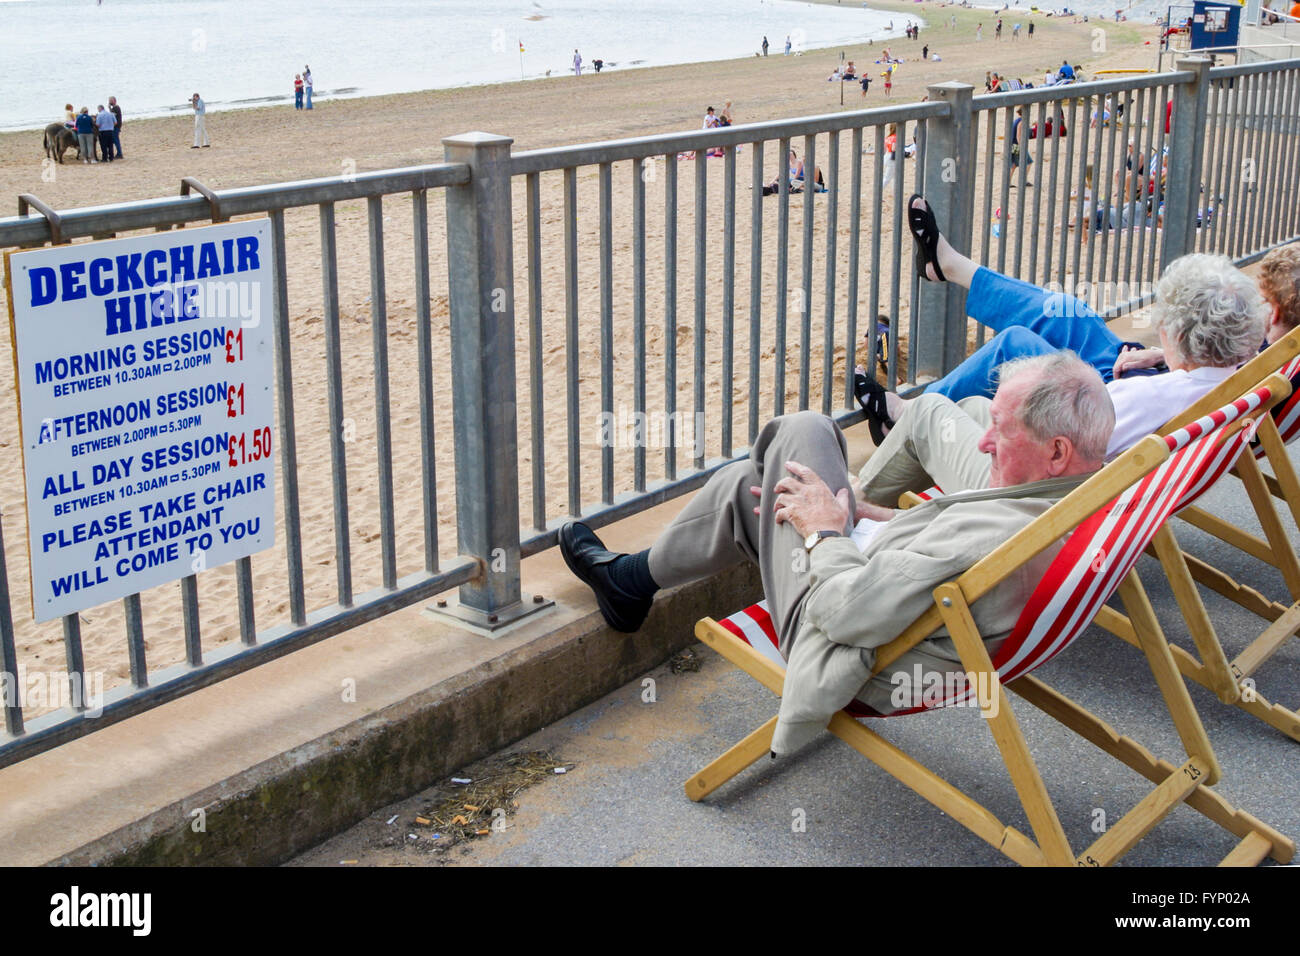 Deckchair For Hire Stock Photos Amp Deckchair For Hire Stock